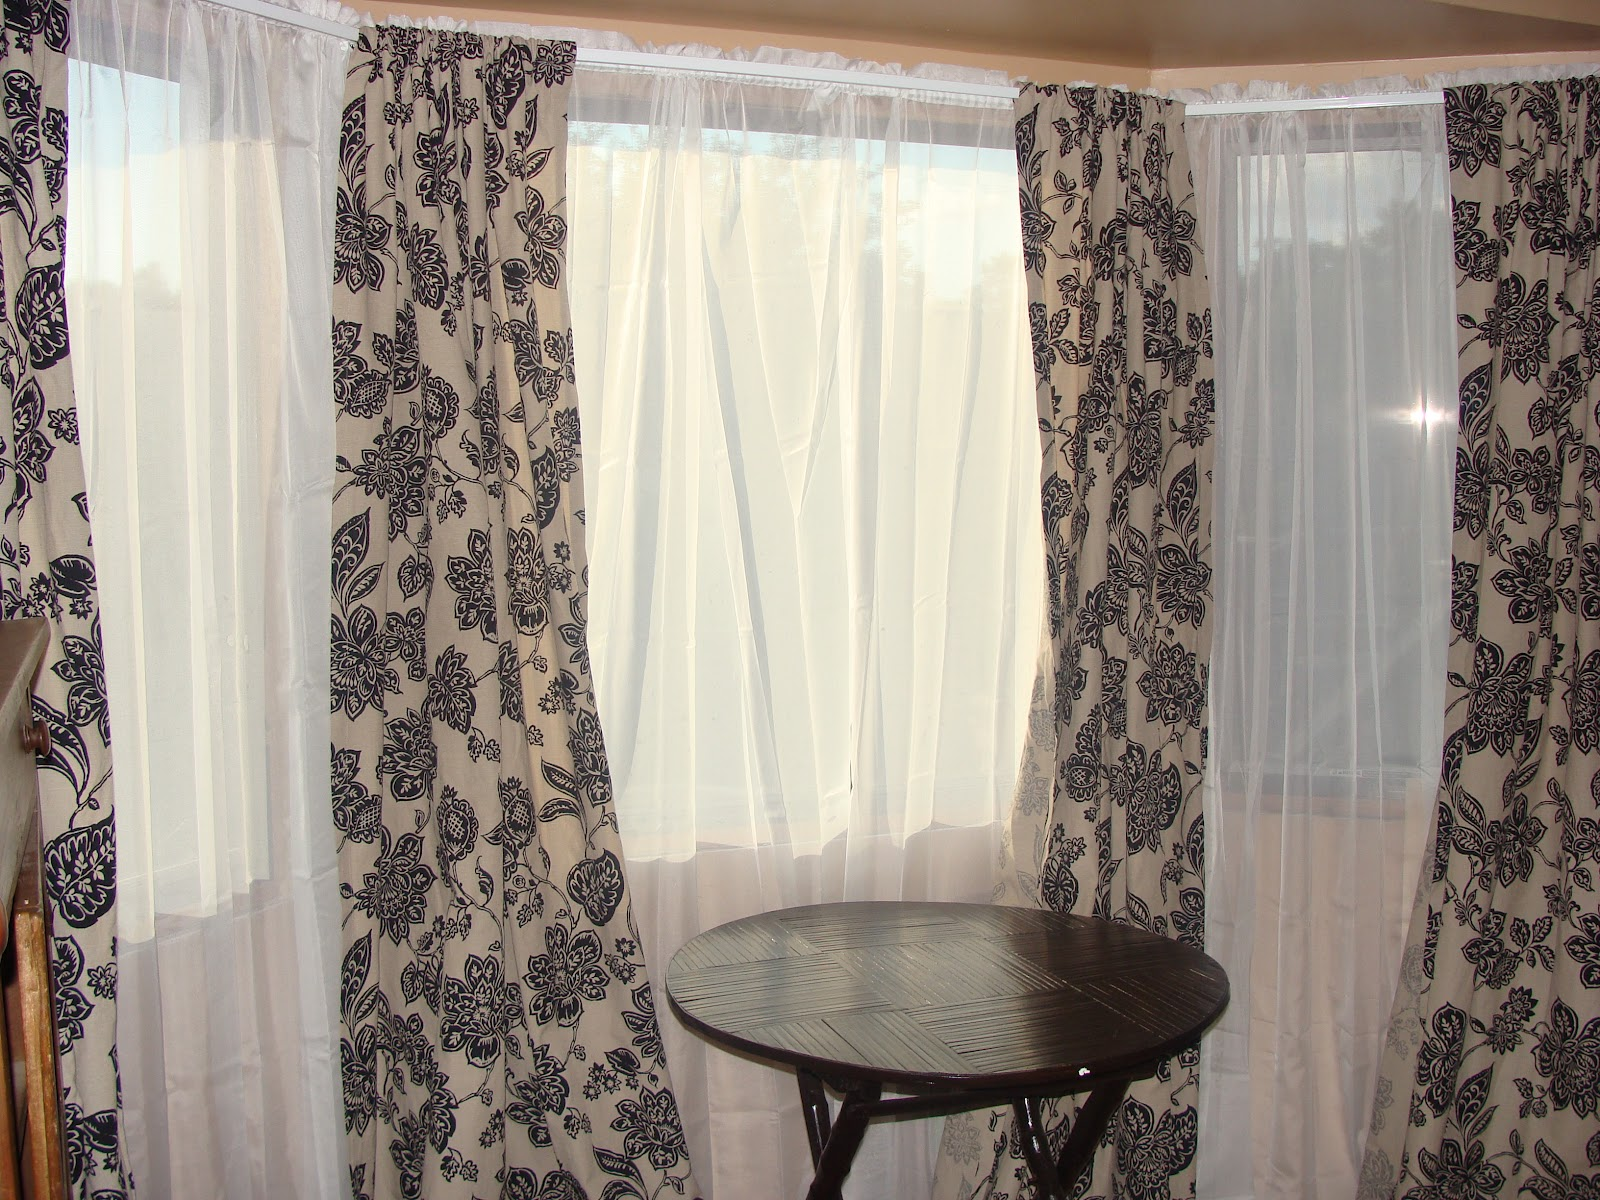 Window Curtain Decorating Ideas: Owen Family Six: Bay Window Curtains